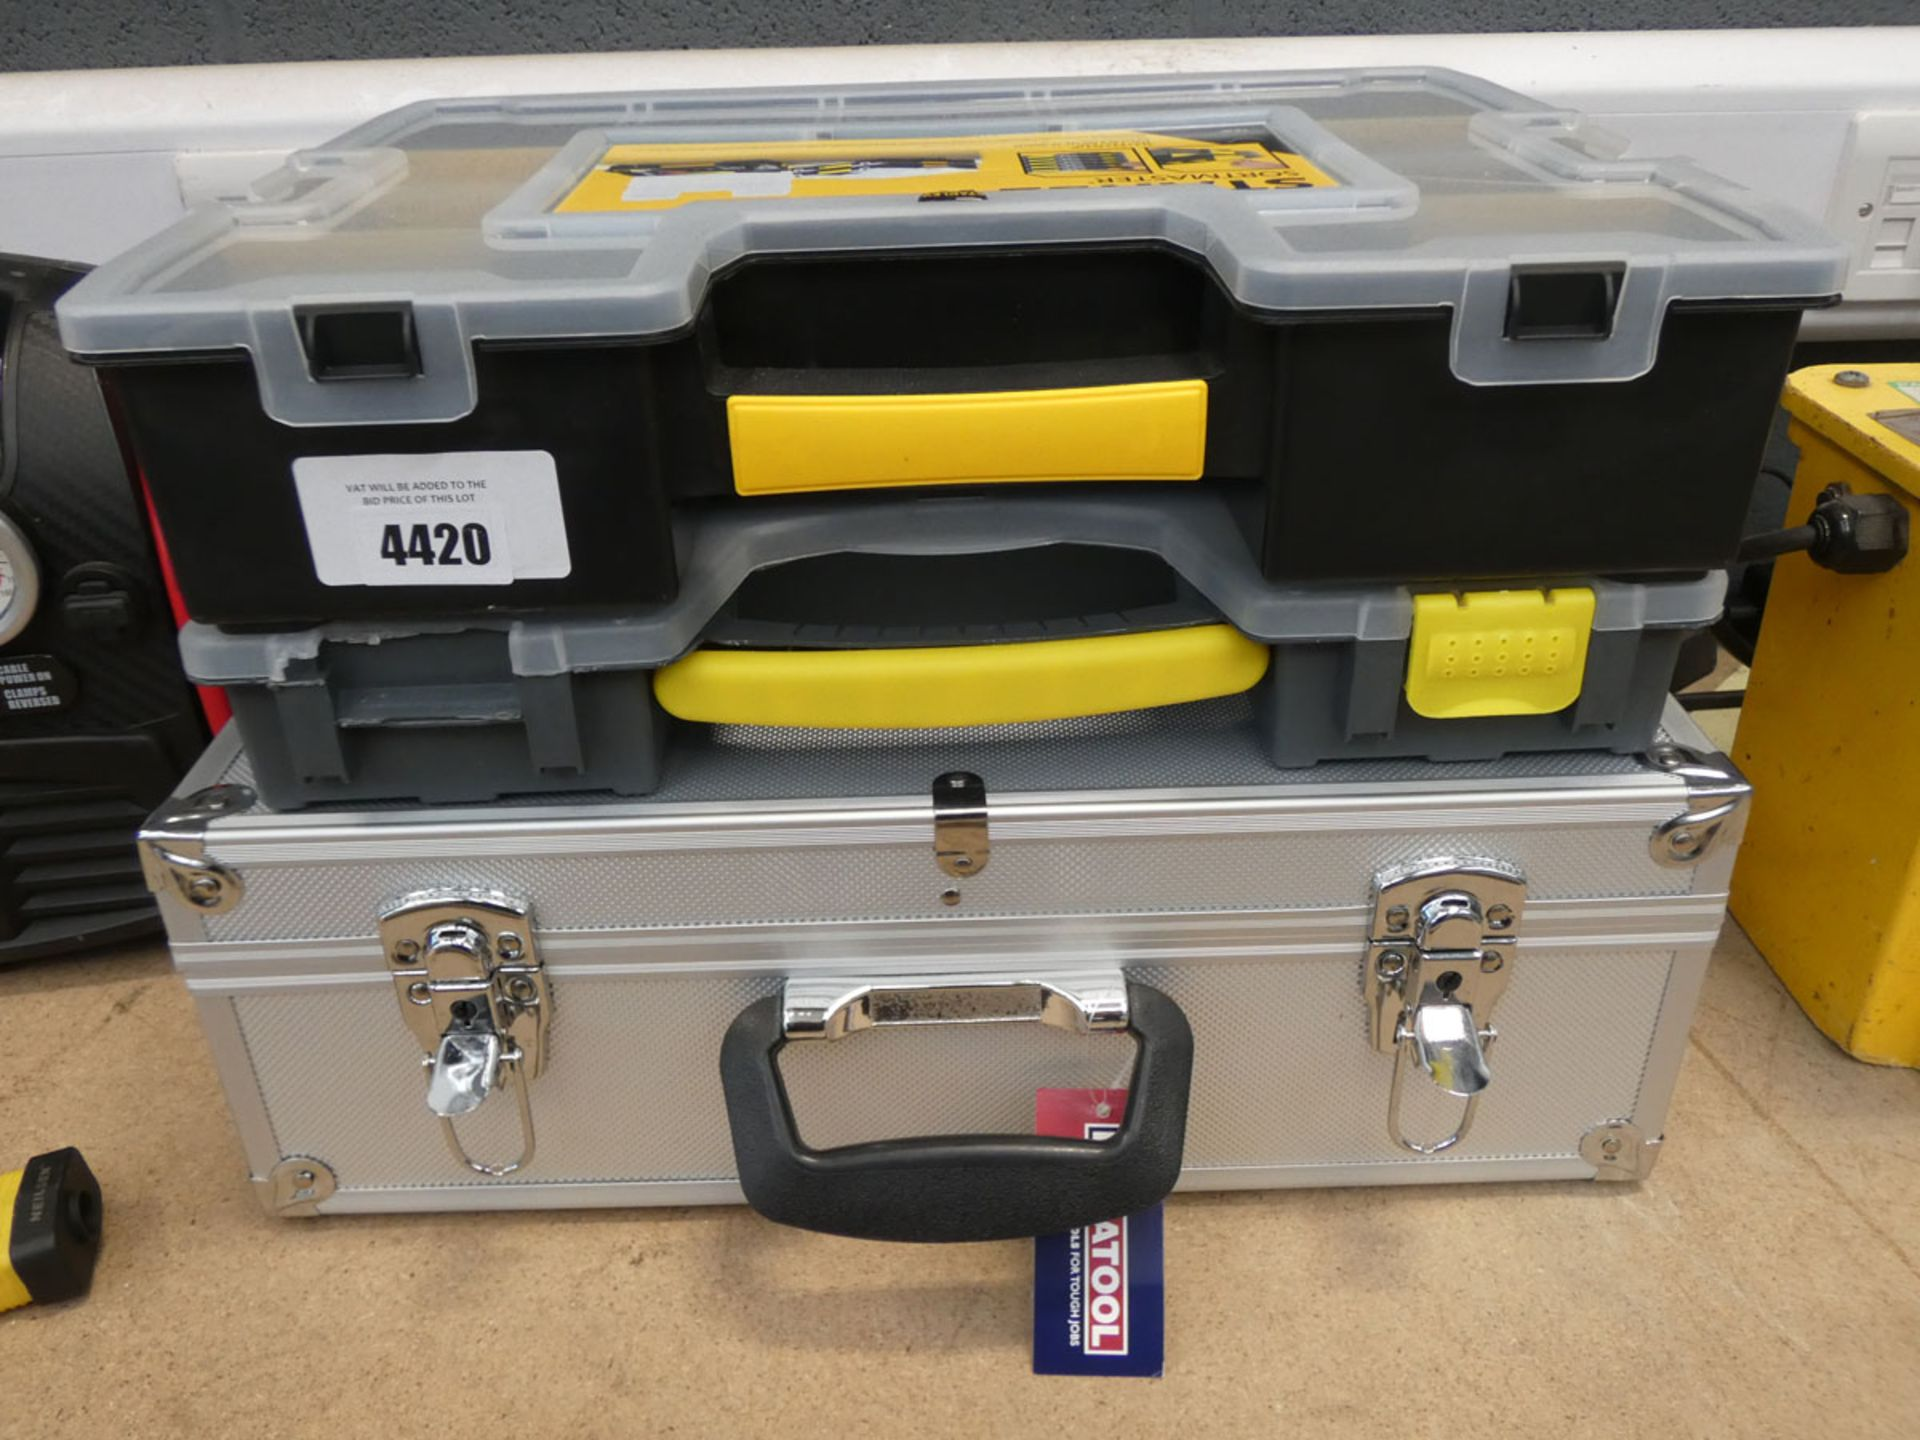 1 metal and 2 plastic toolcases